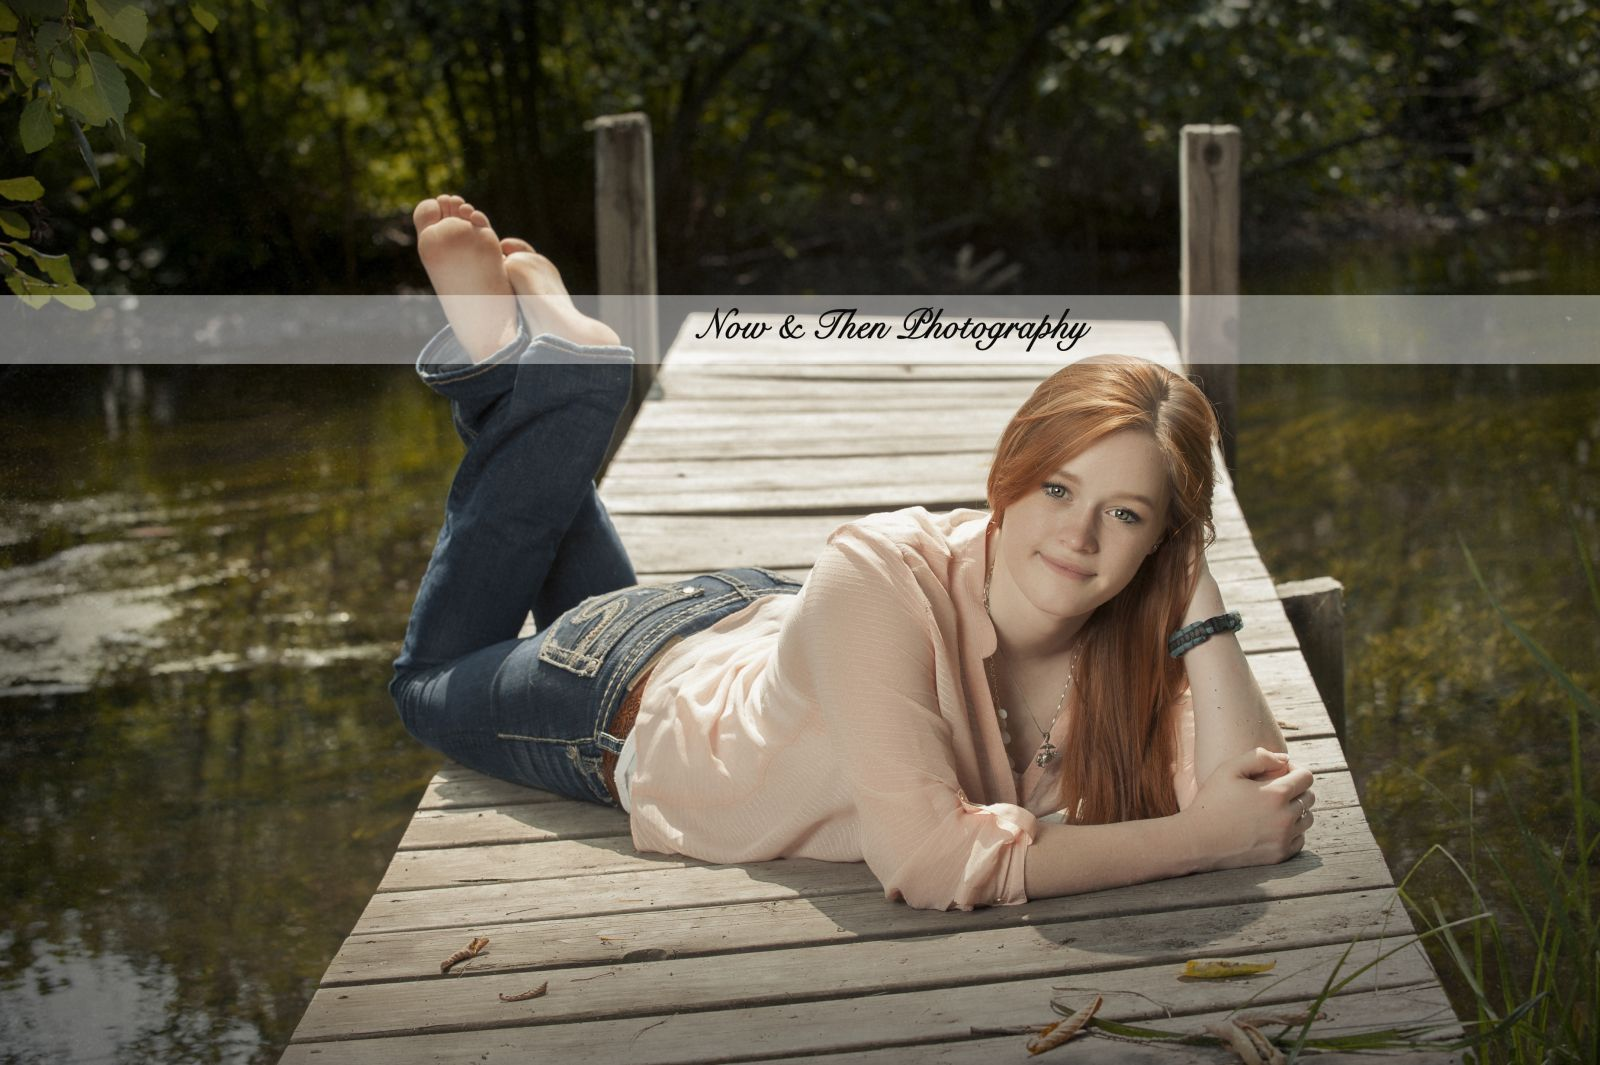 Now & Then Photography   Balsam Lake, WI   Posts   Twin Cities Photographer   Western Wisconsin Photographer   Senior Pictures   Girls   Outfit Ideas   Poses   Class of 2015   Outdoors  